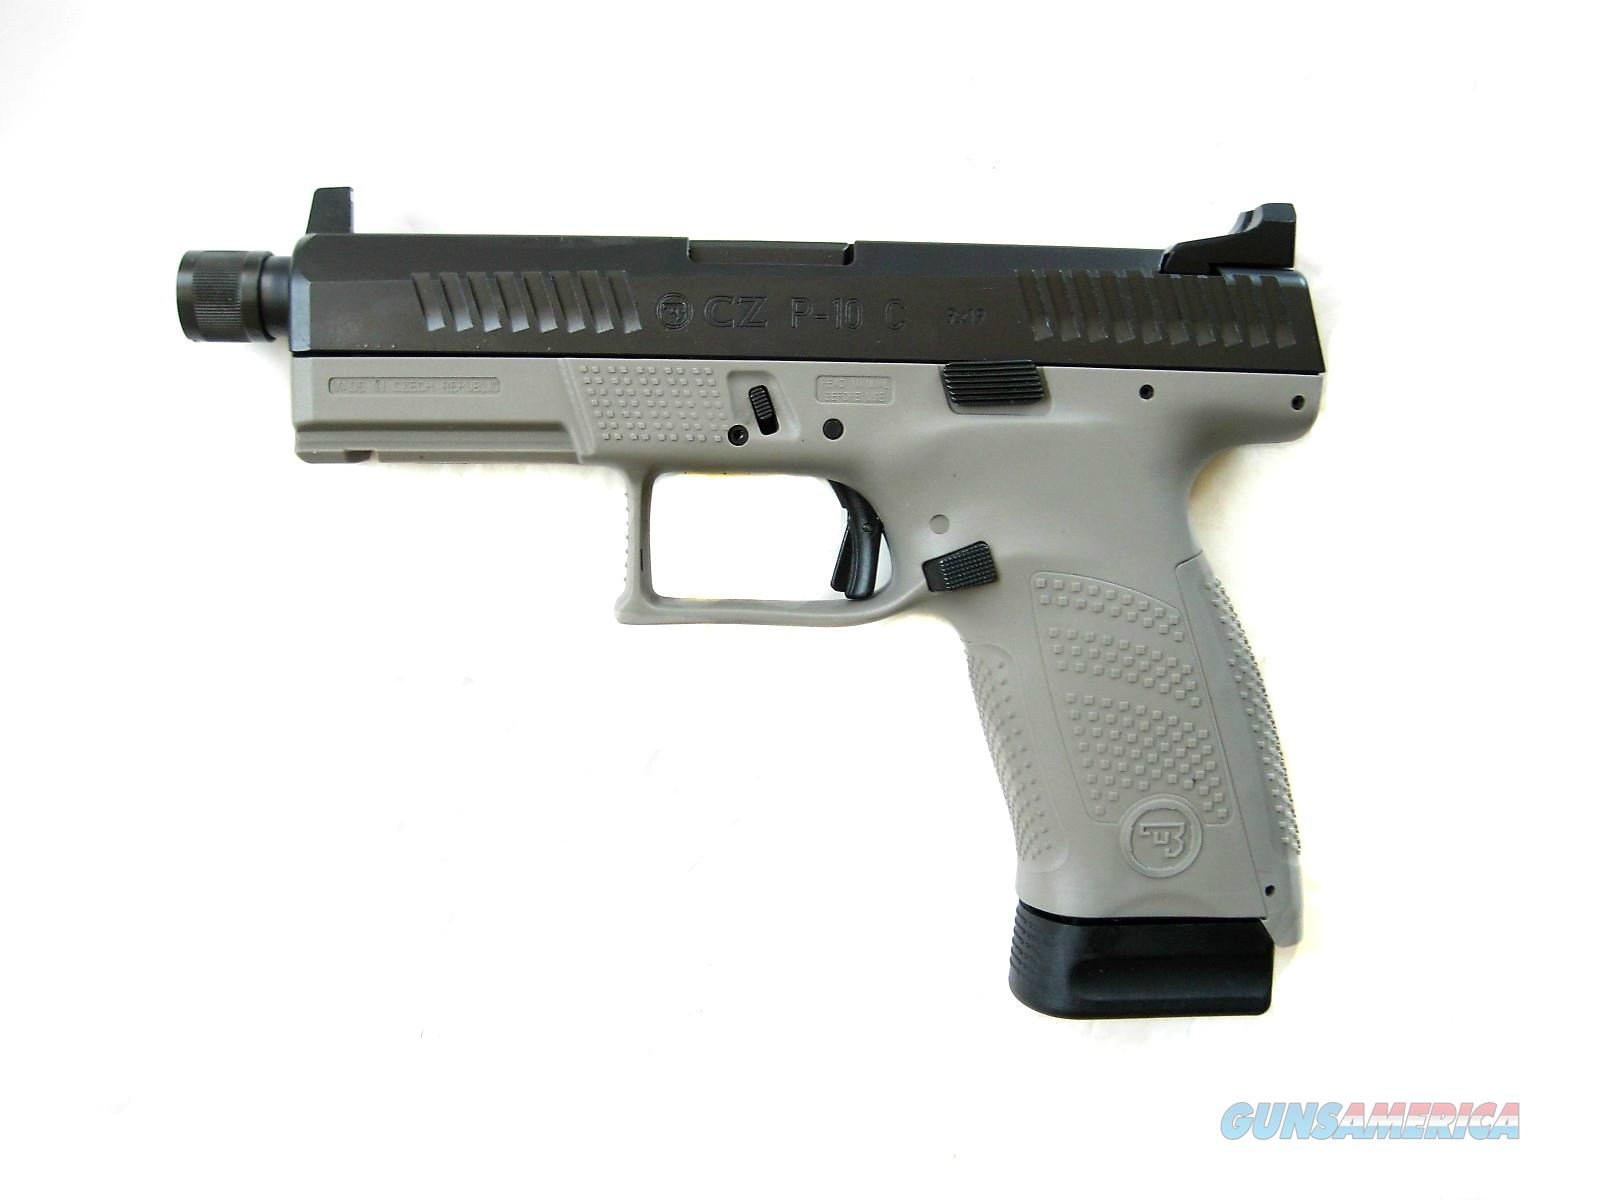 CZ P10 9mm 2019 Reversible Mag Release Threaded Suppressor Ready Urban Grey 17rd 91534 *NEW*  Guns > Pistols > CZ Pistols